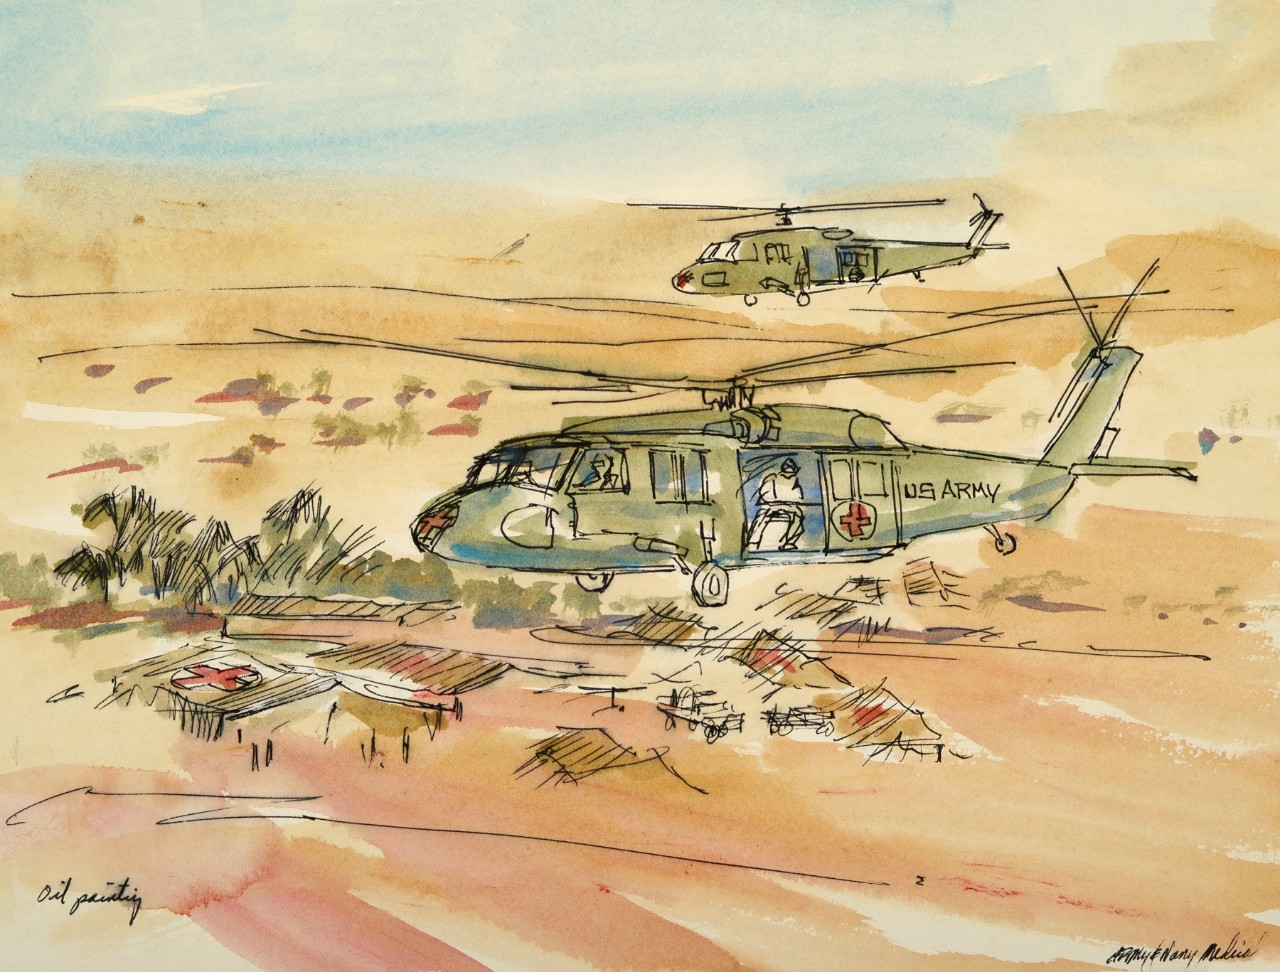 Two helicopters fly over hospital tents in the desert